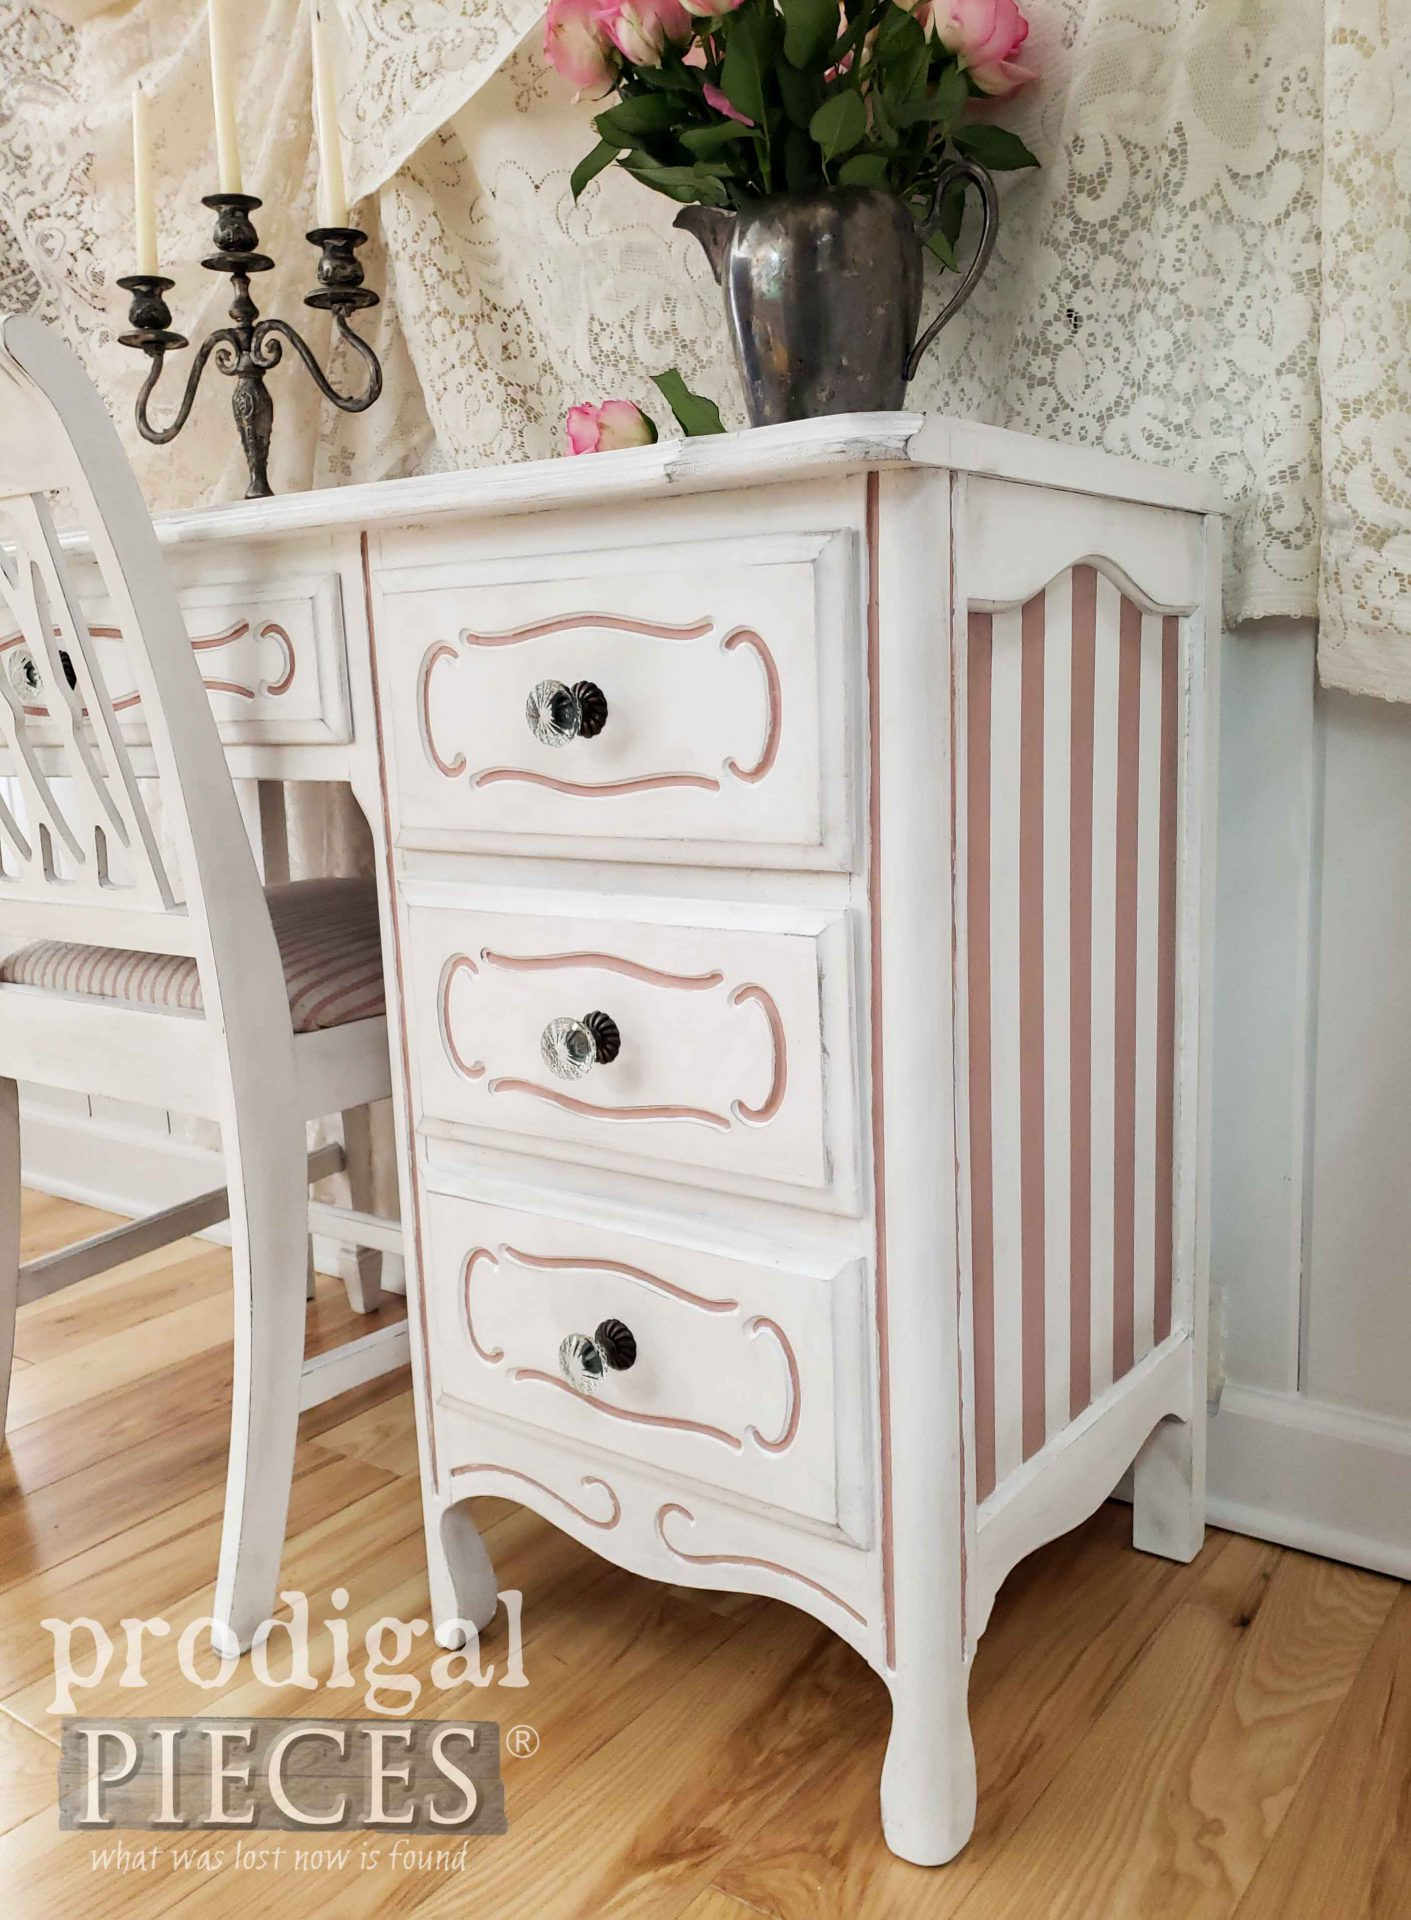 French Provincial Desk Set with Pink Stripes by Larissa of Prodigal Pieces | prodigalpieces.com #prodigalpieces #diy #furniture #shabbychic #french #diy #home #homedecor